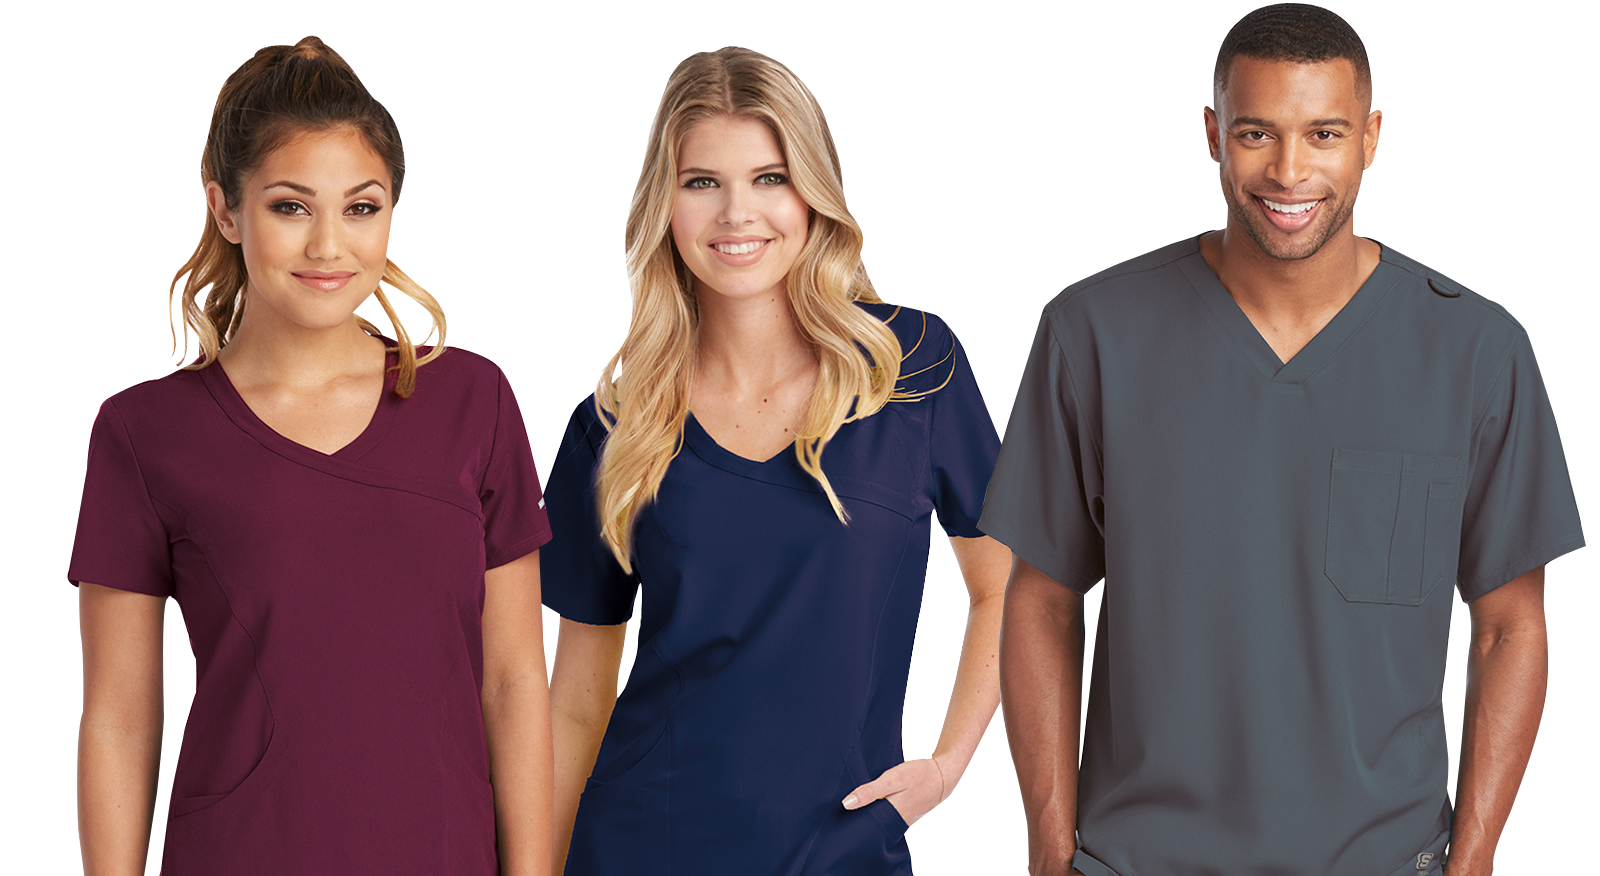 7a8b28caeaf Skechers Scrubs & Nursing Uniforms By Barco | Medical Scrubs Collection